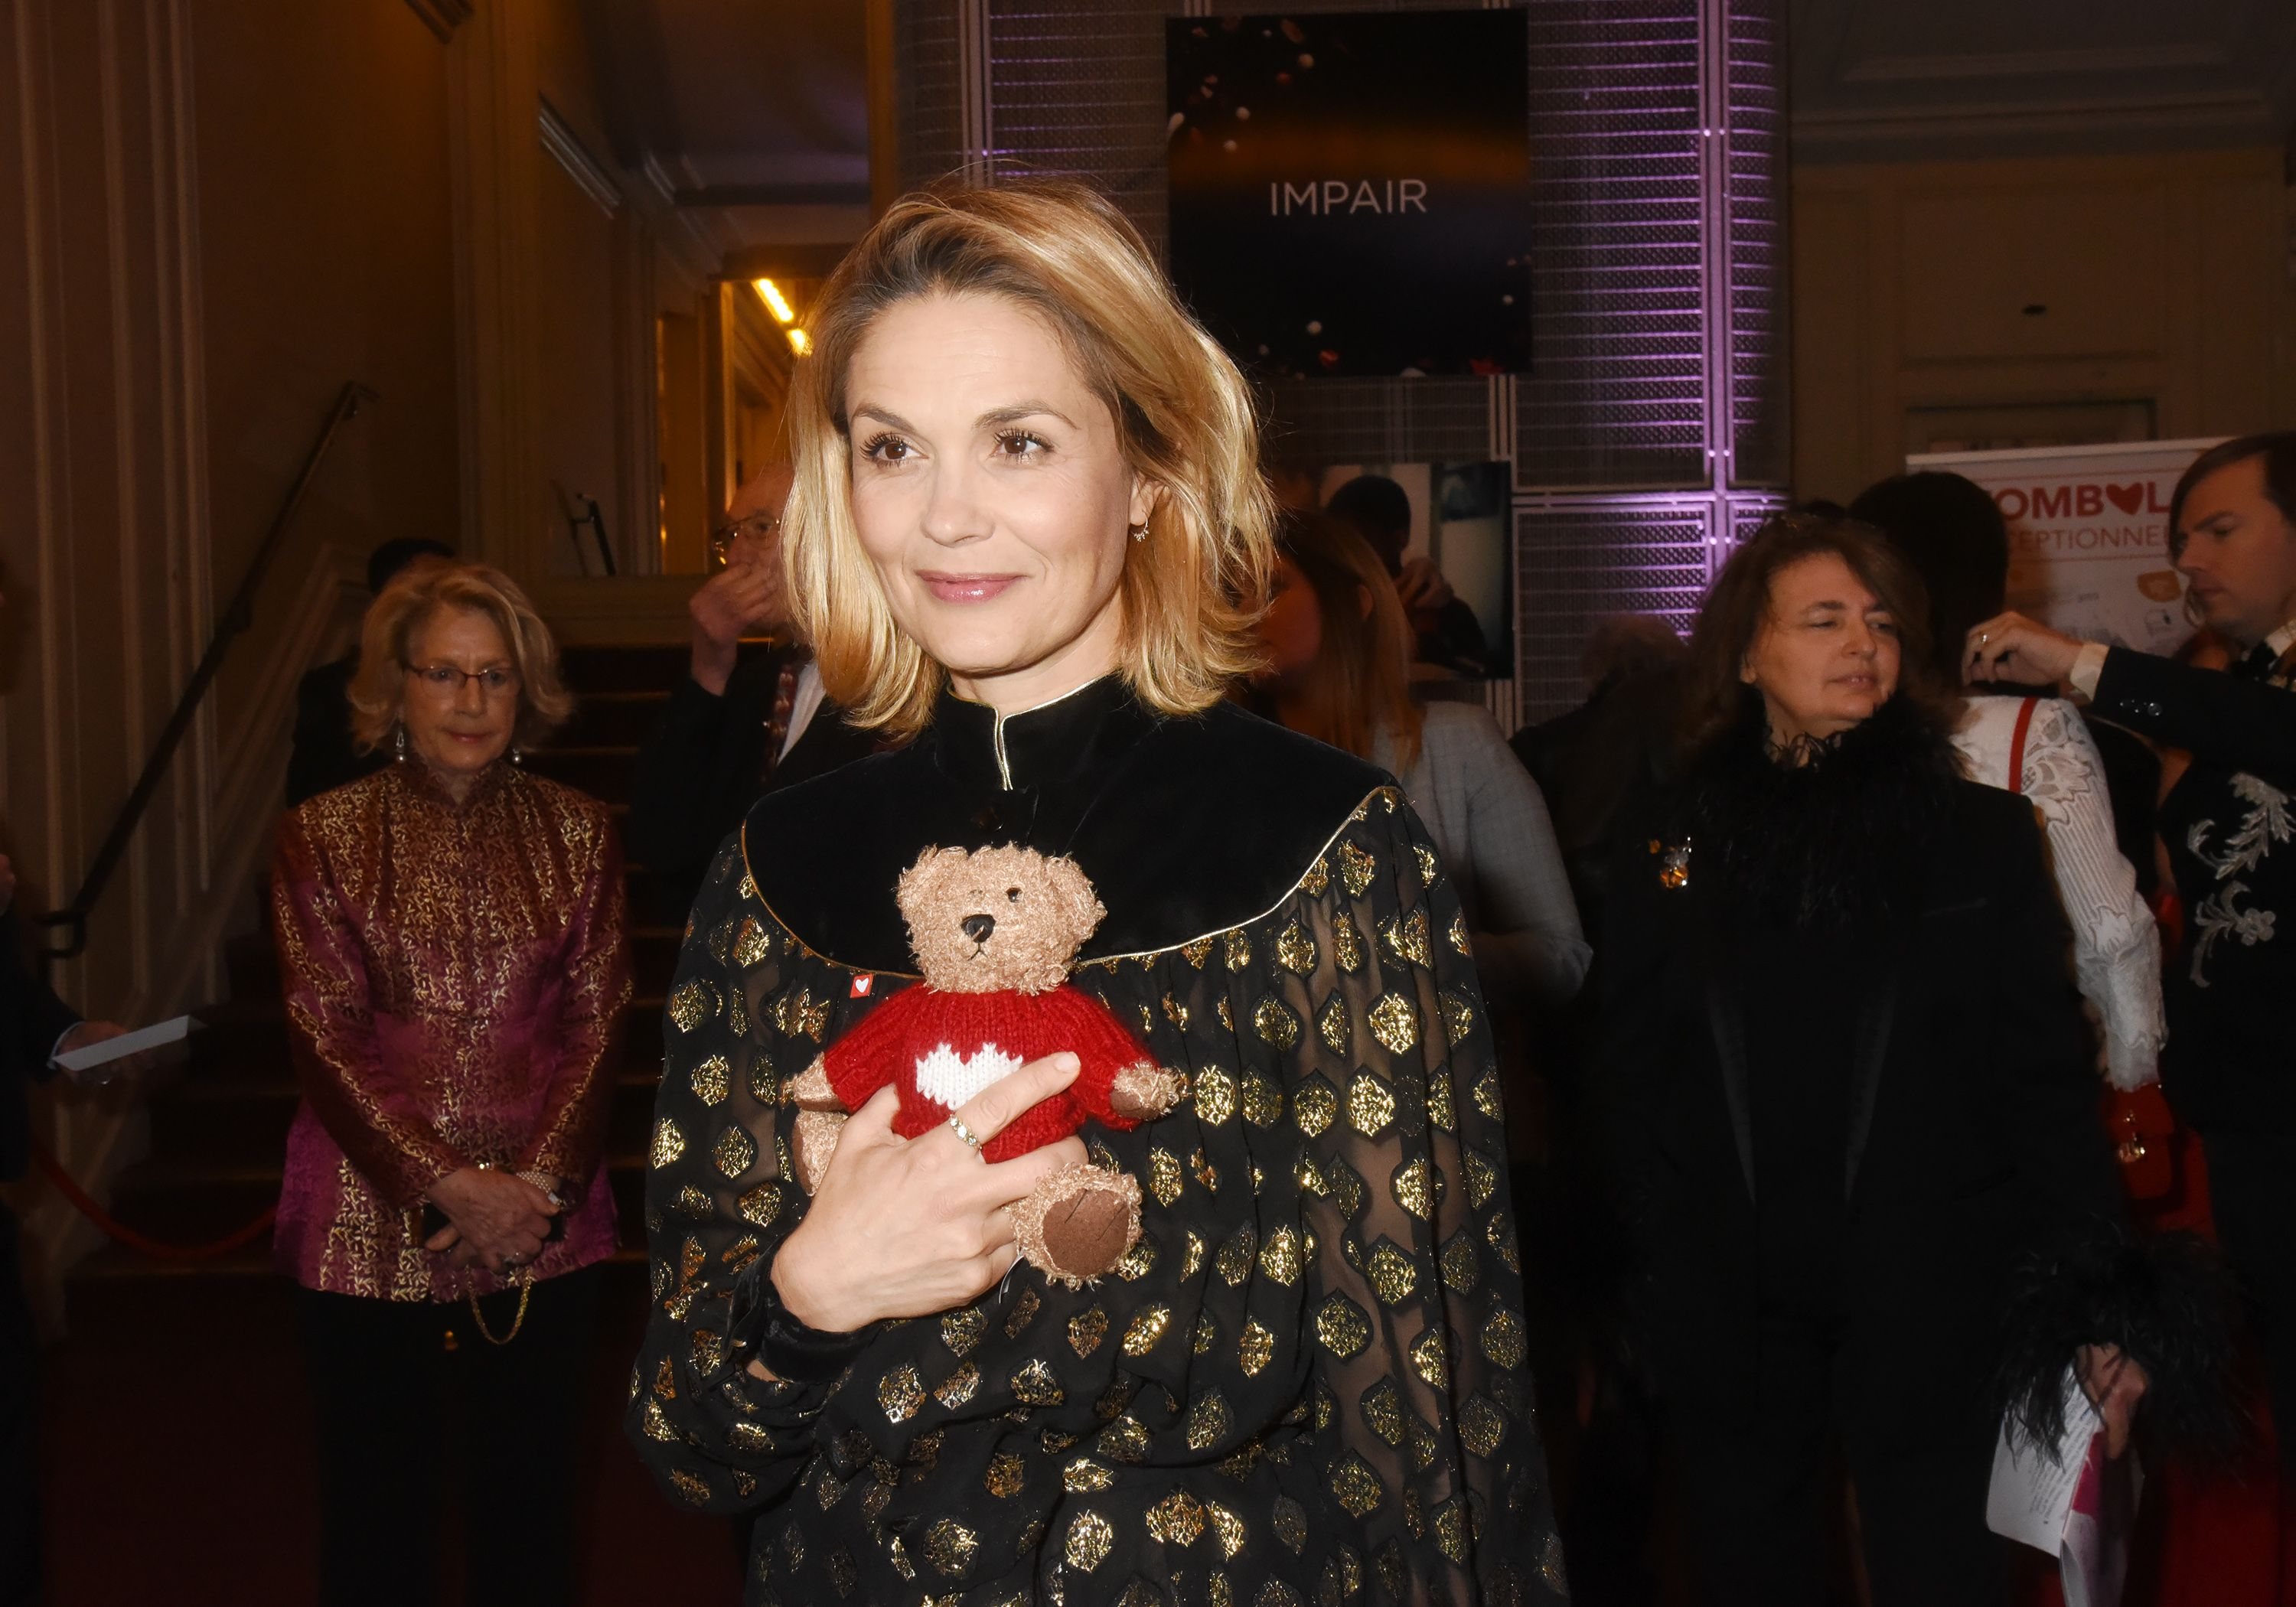 L'actrice Barbara Schulz à la salle Gaveau le 27 janvier 2020 à Paris, France. | Photo : Getty Images